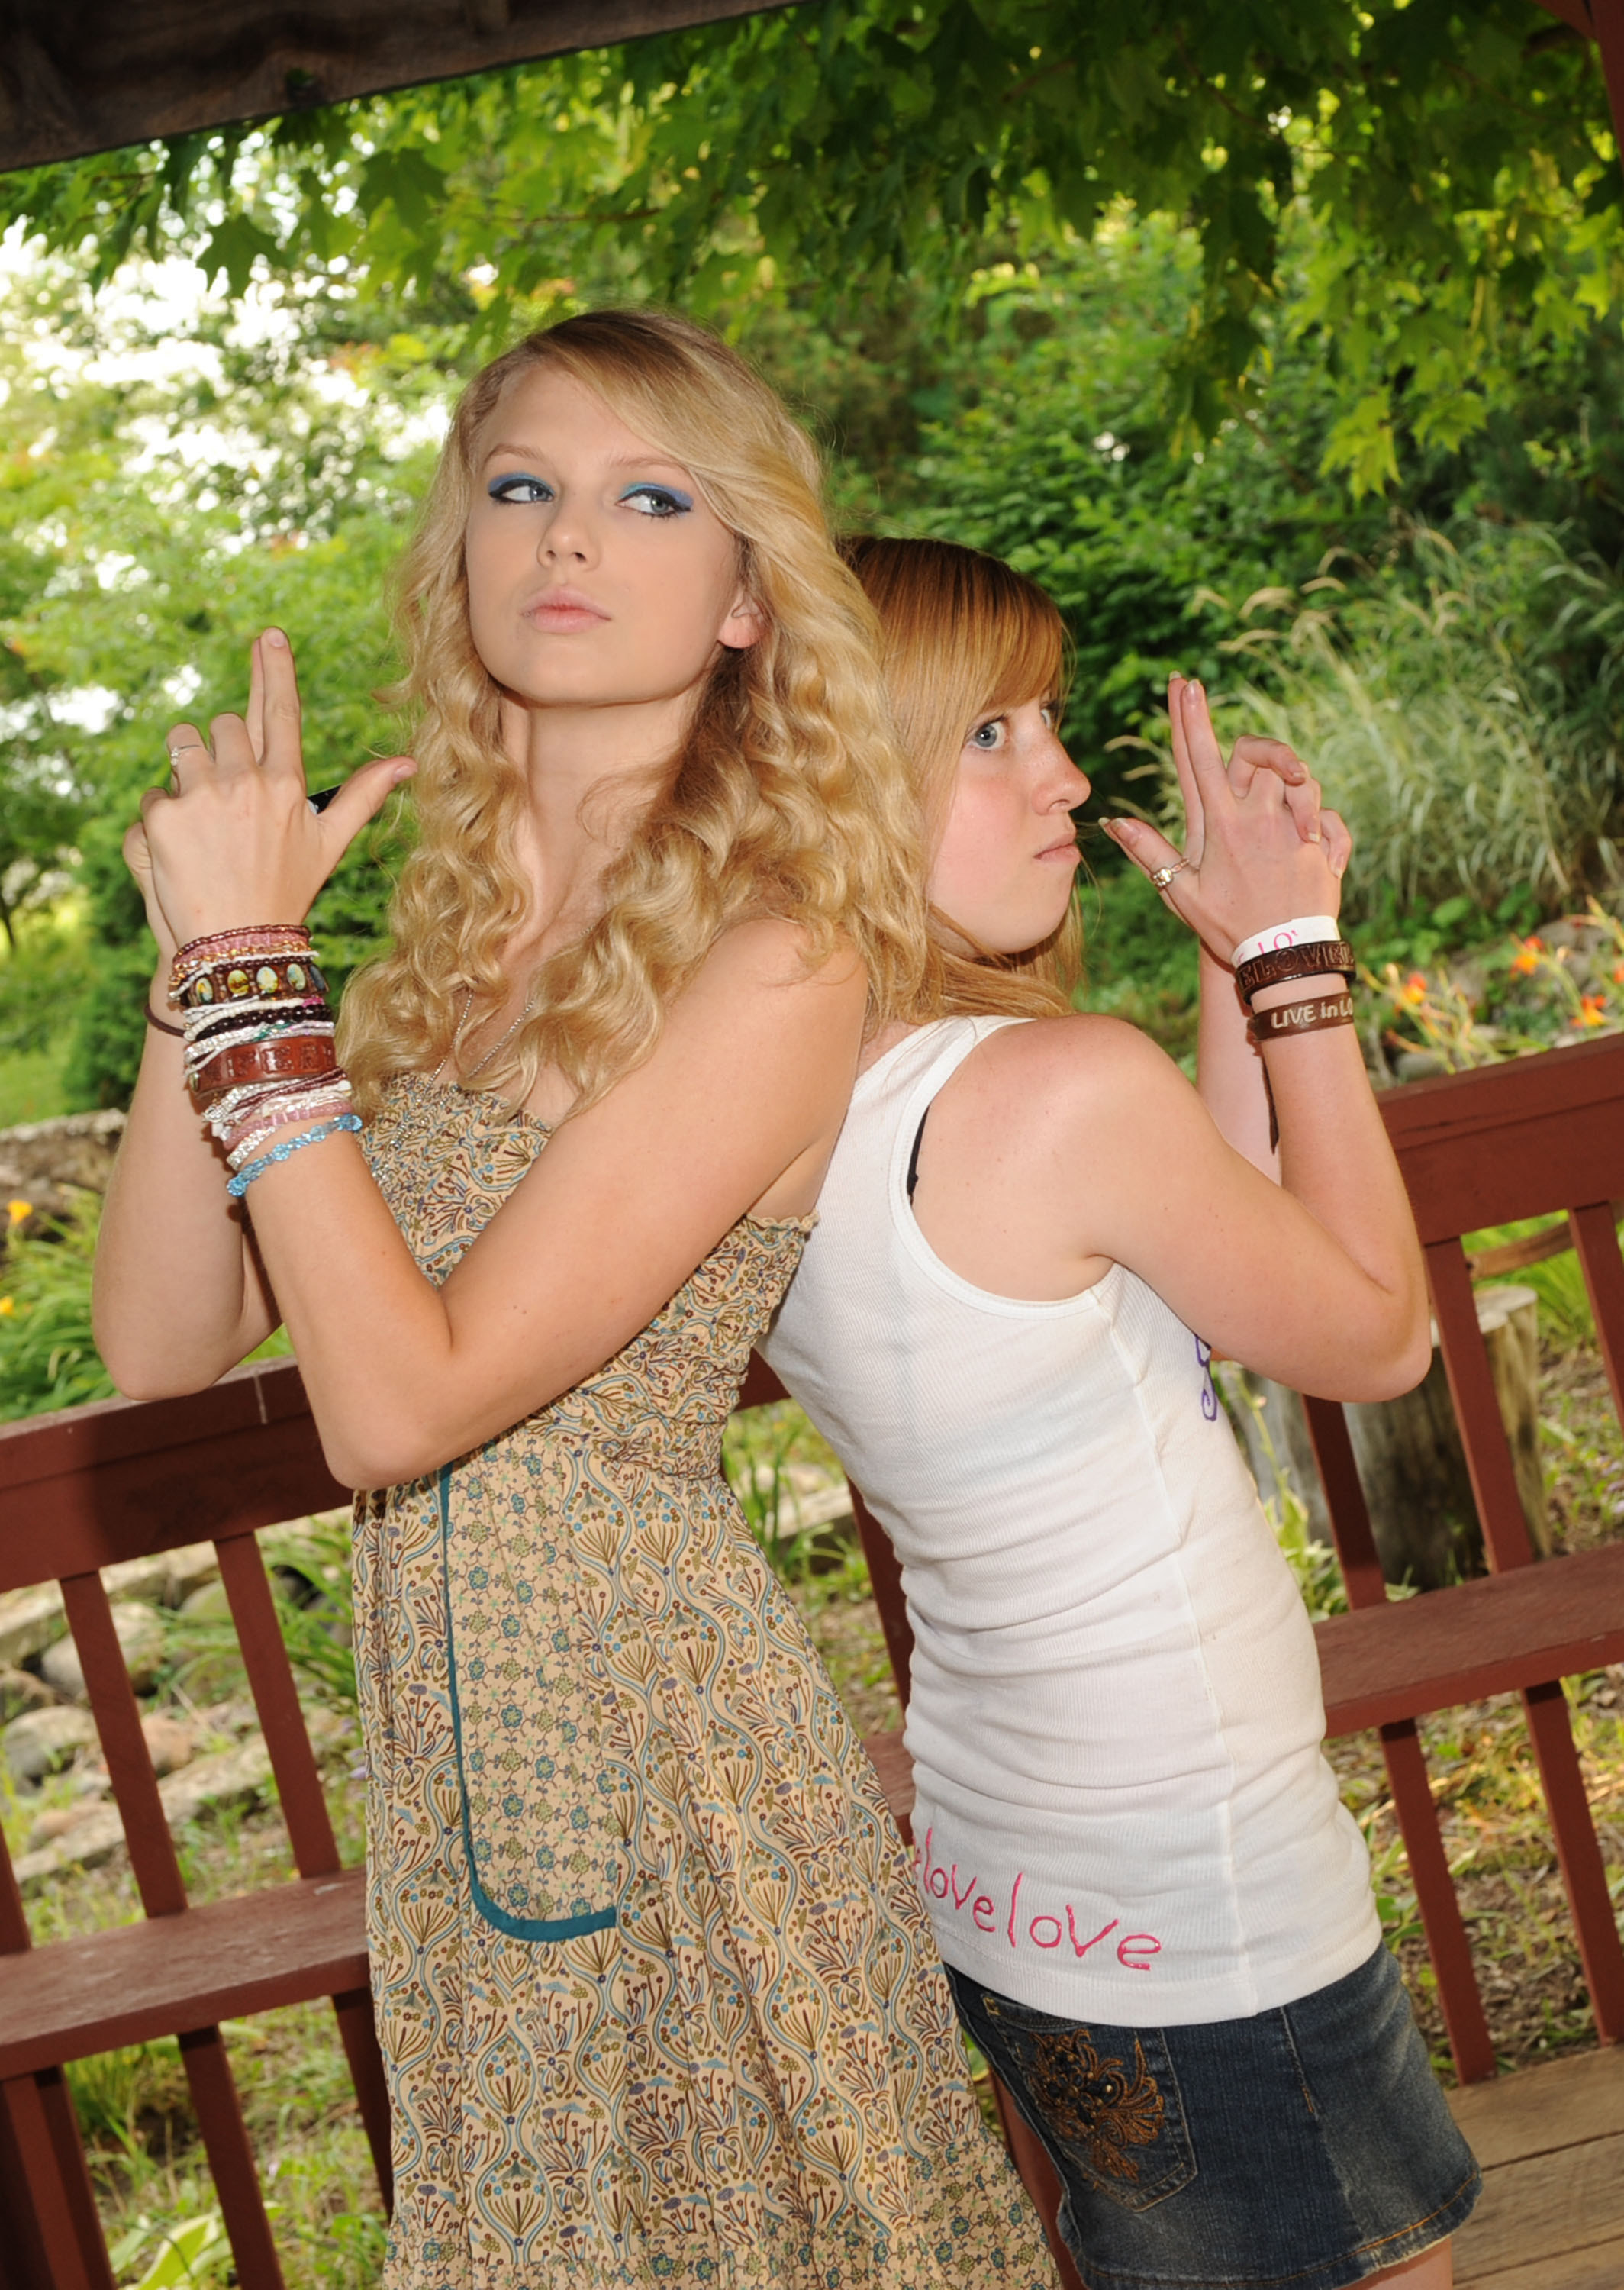 Taylor Swift posing with a fan back to back